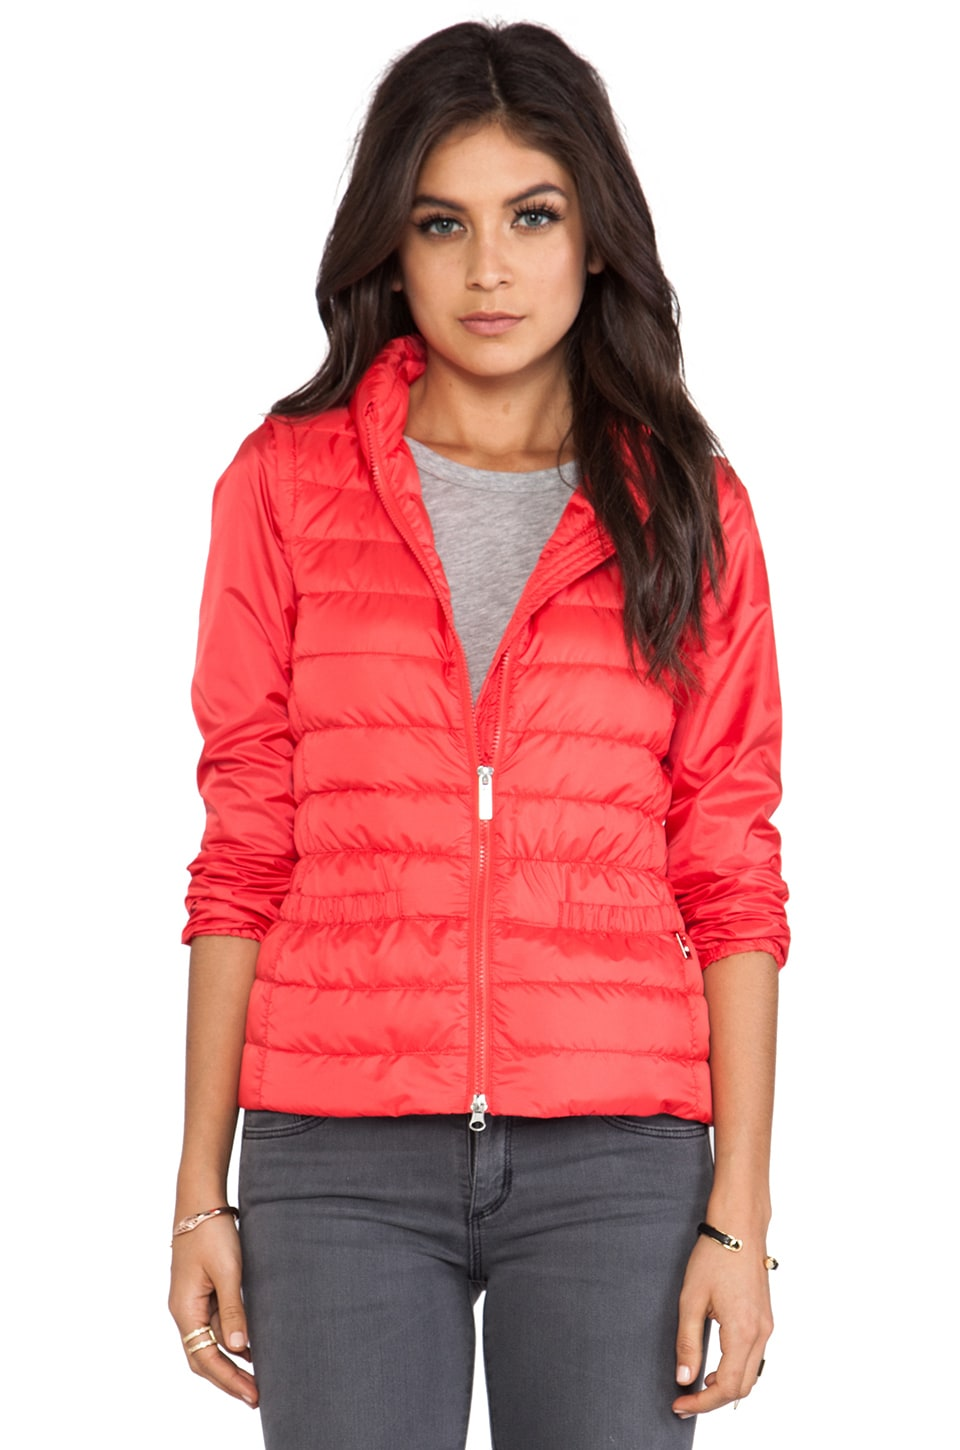 ADD Down Detachable Jacket in Poppy Red